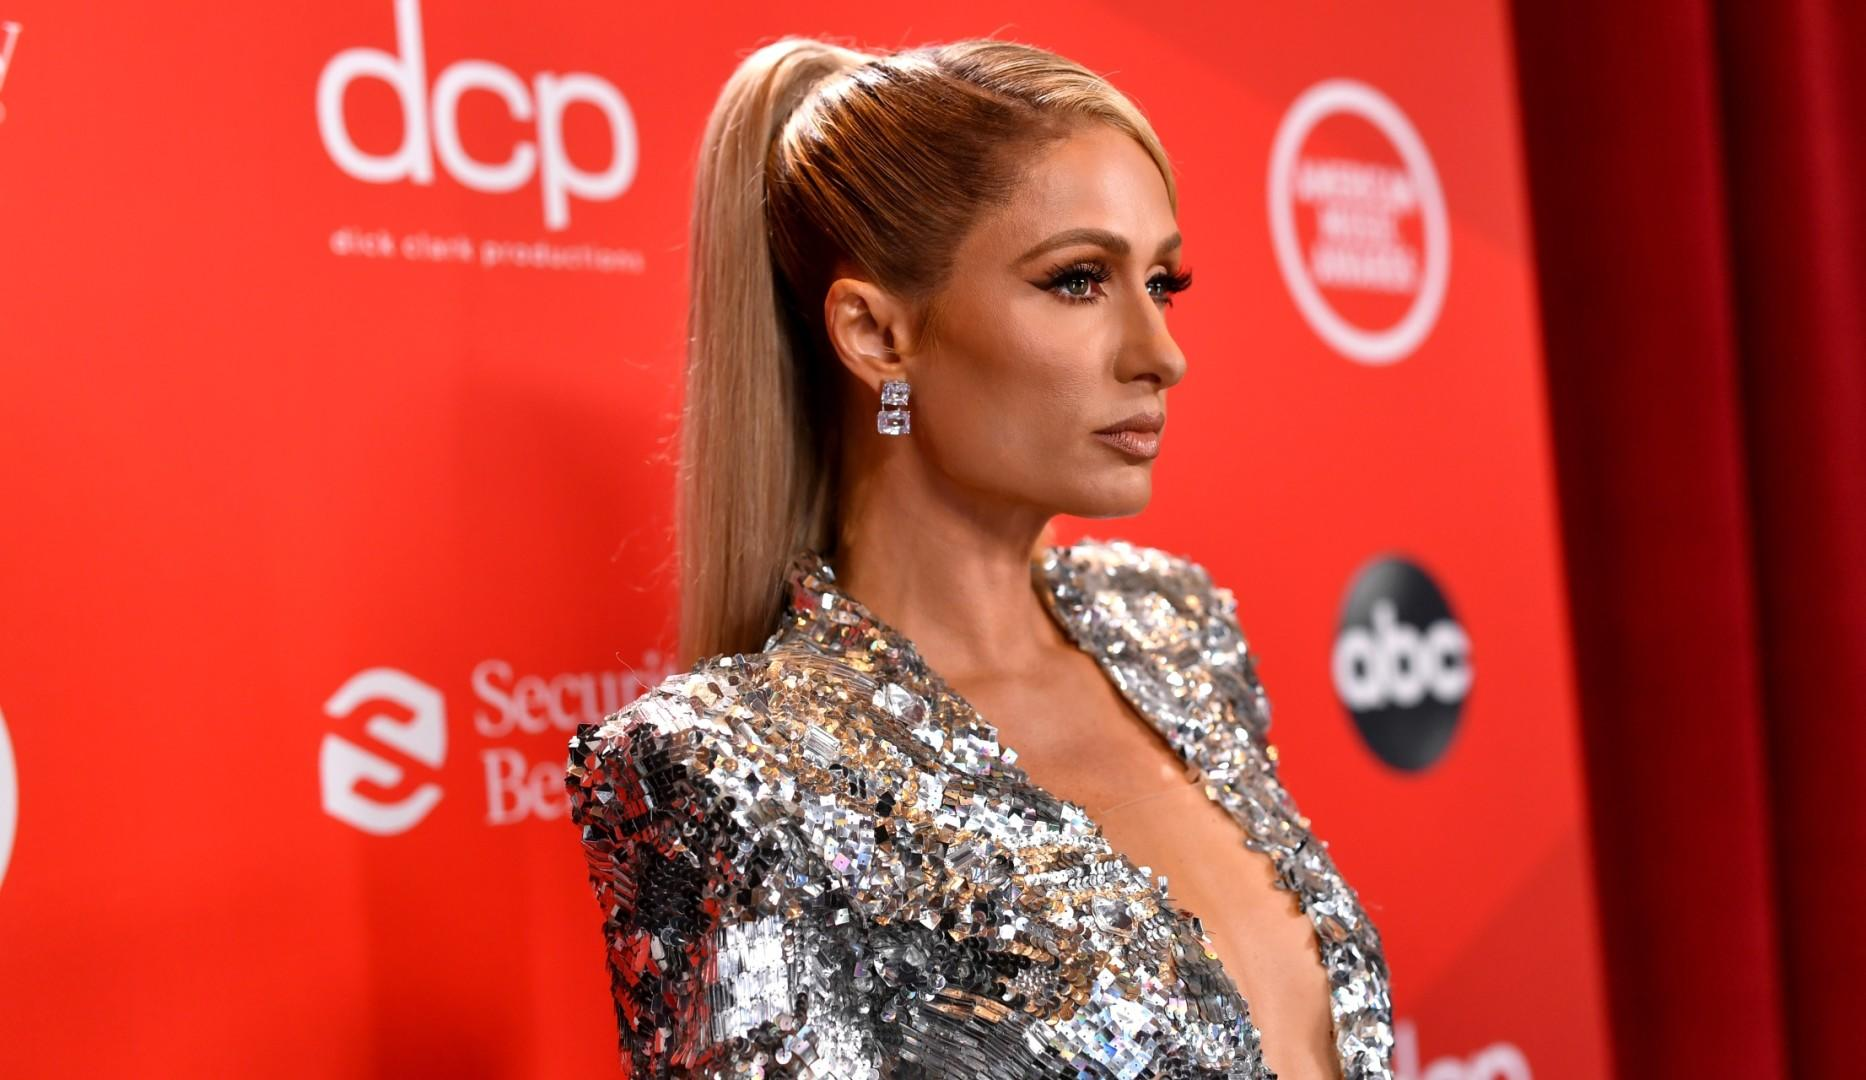 Paris Hilton Looks Back on 'Very Cruel' 2007 Letterman Interview in Wake of Britney Spears Doc - Yahoo Entertainment